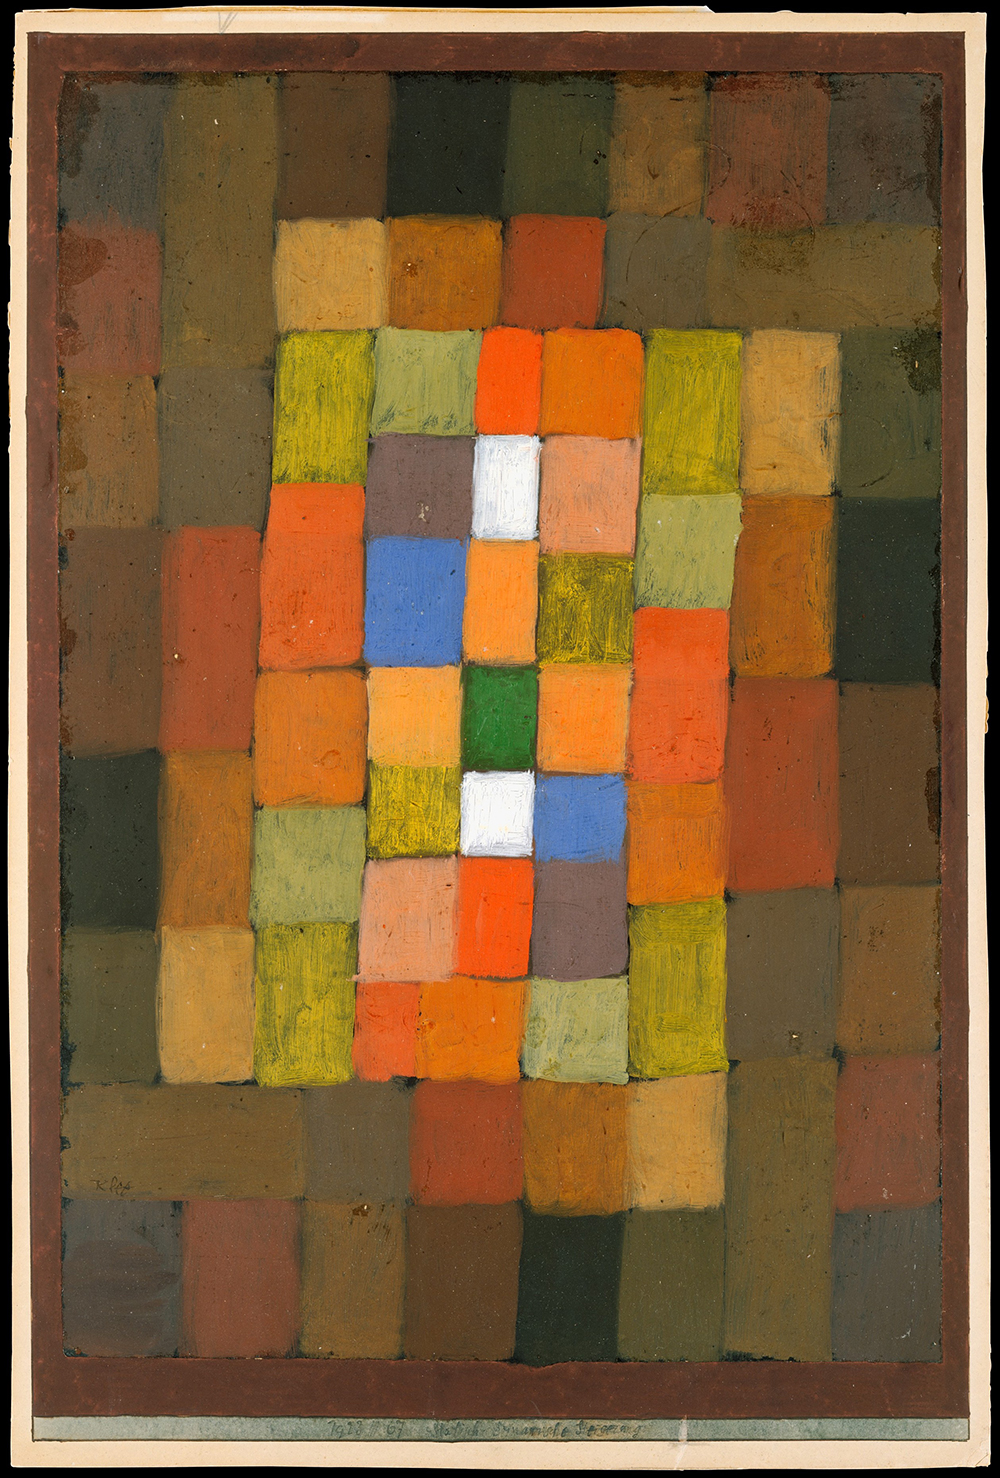 """Static-Dynamic Gradation,"" by Paul Klee, 1923. The Berggruen Klee Collection, 1987, The Metropolitan Museum of Art. Klee offered the aphorism ""To paint well means only this: to put the right colors in the right spot"" to his students at the Bauhaus."